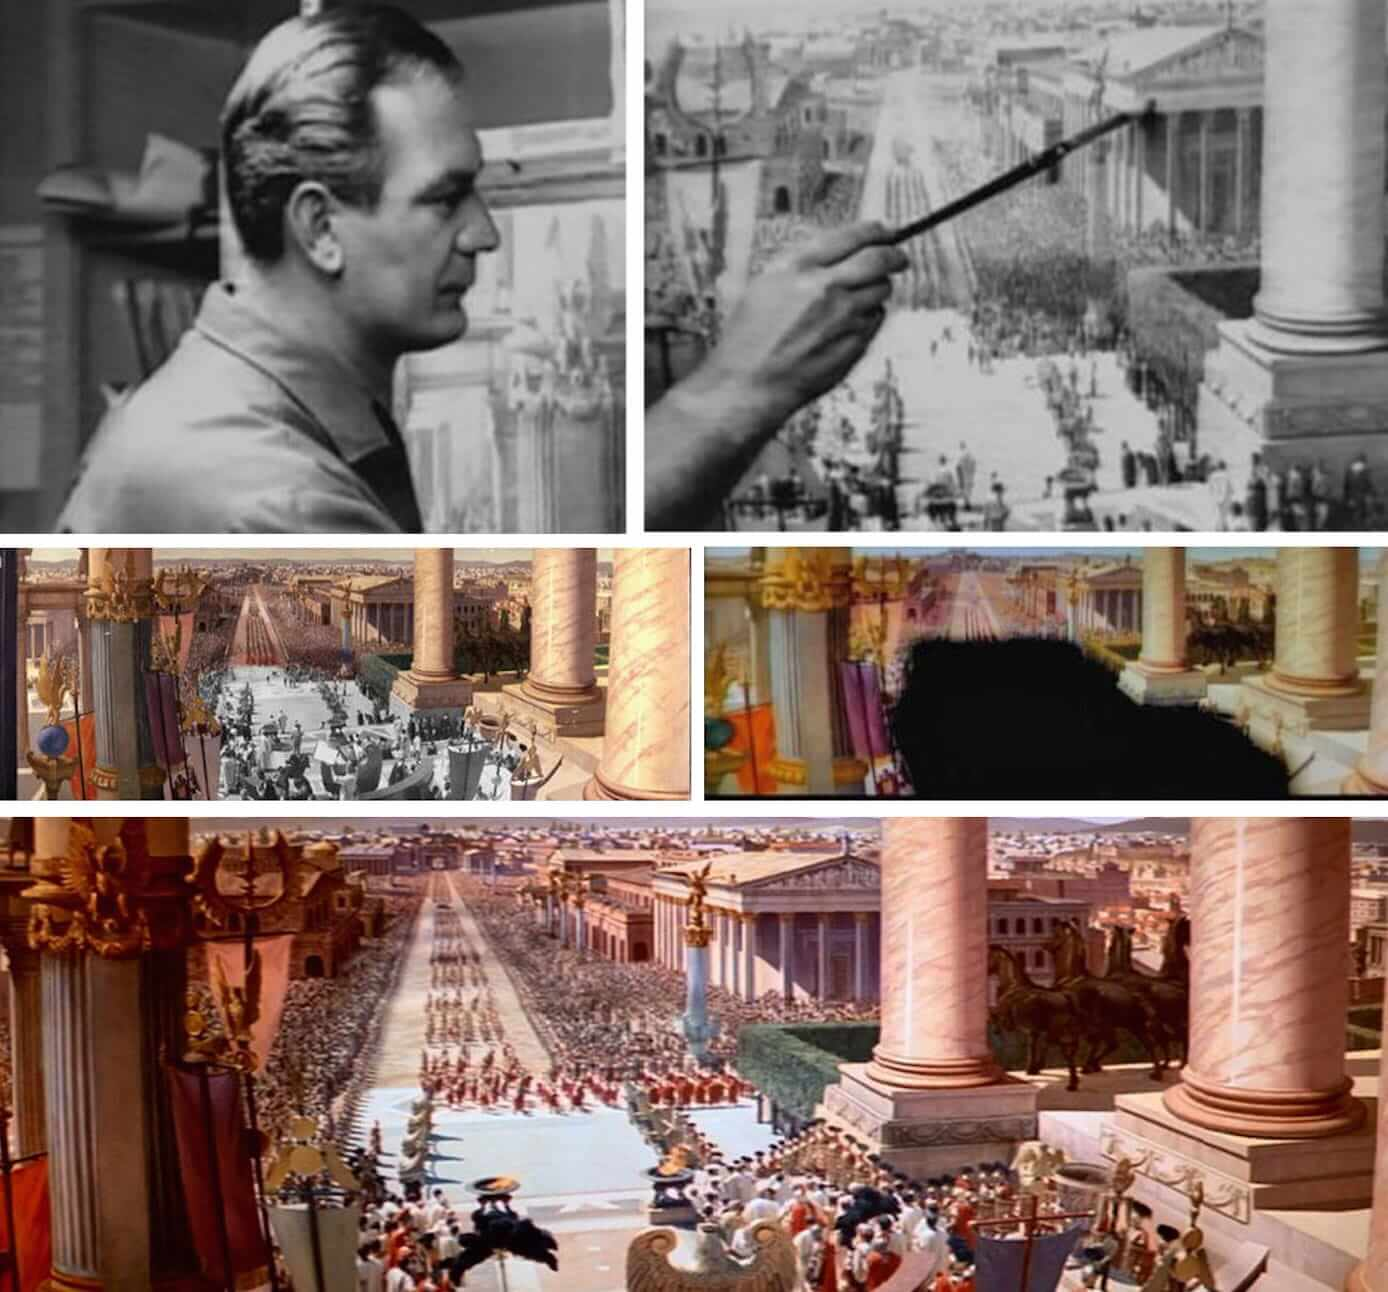 Casting Background Ben Hur Painting